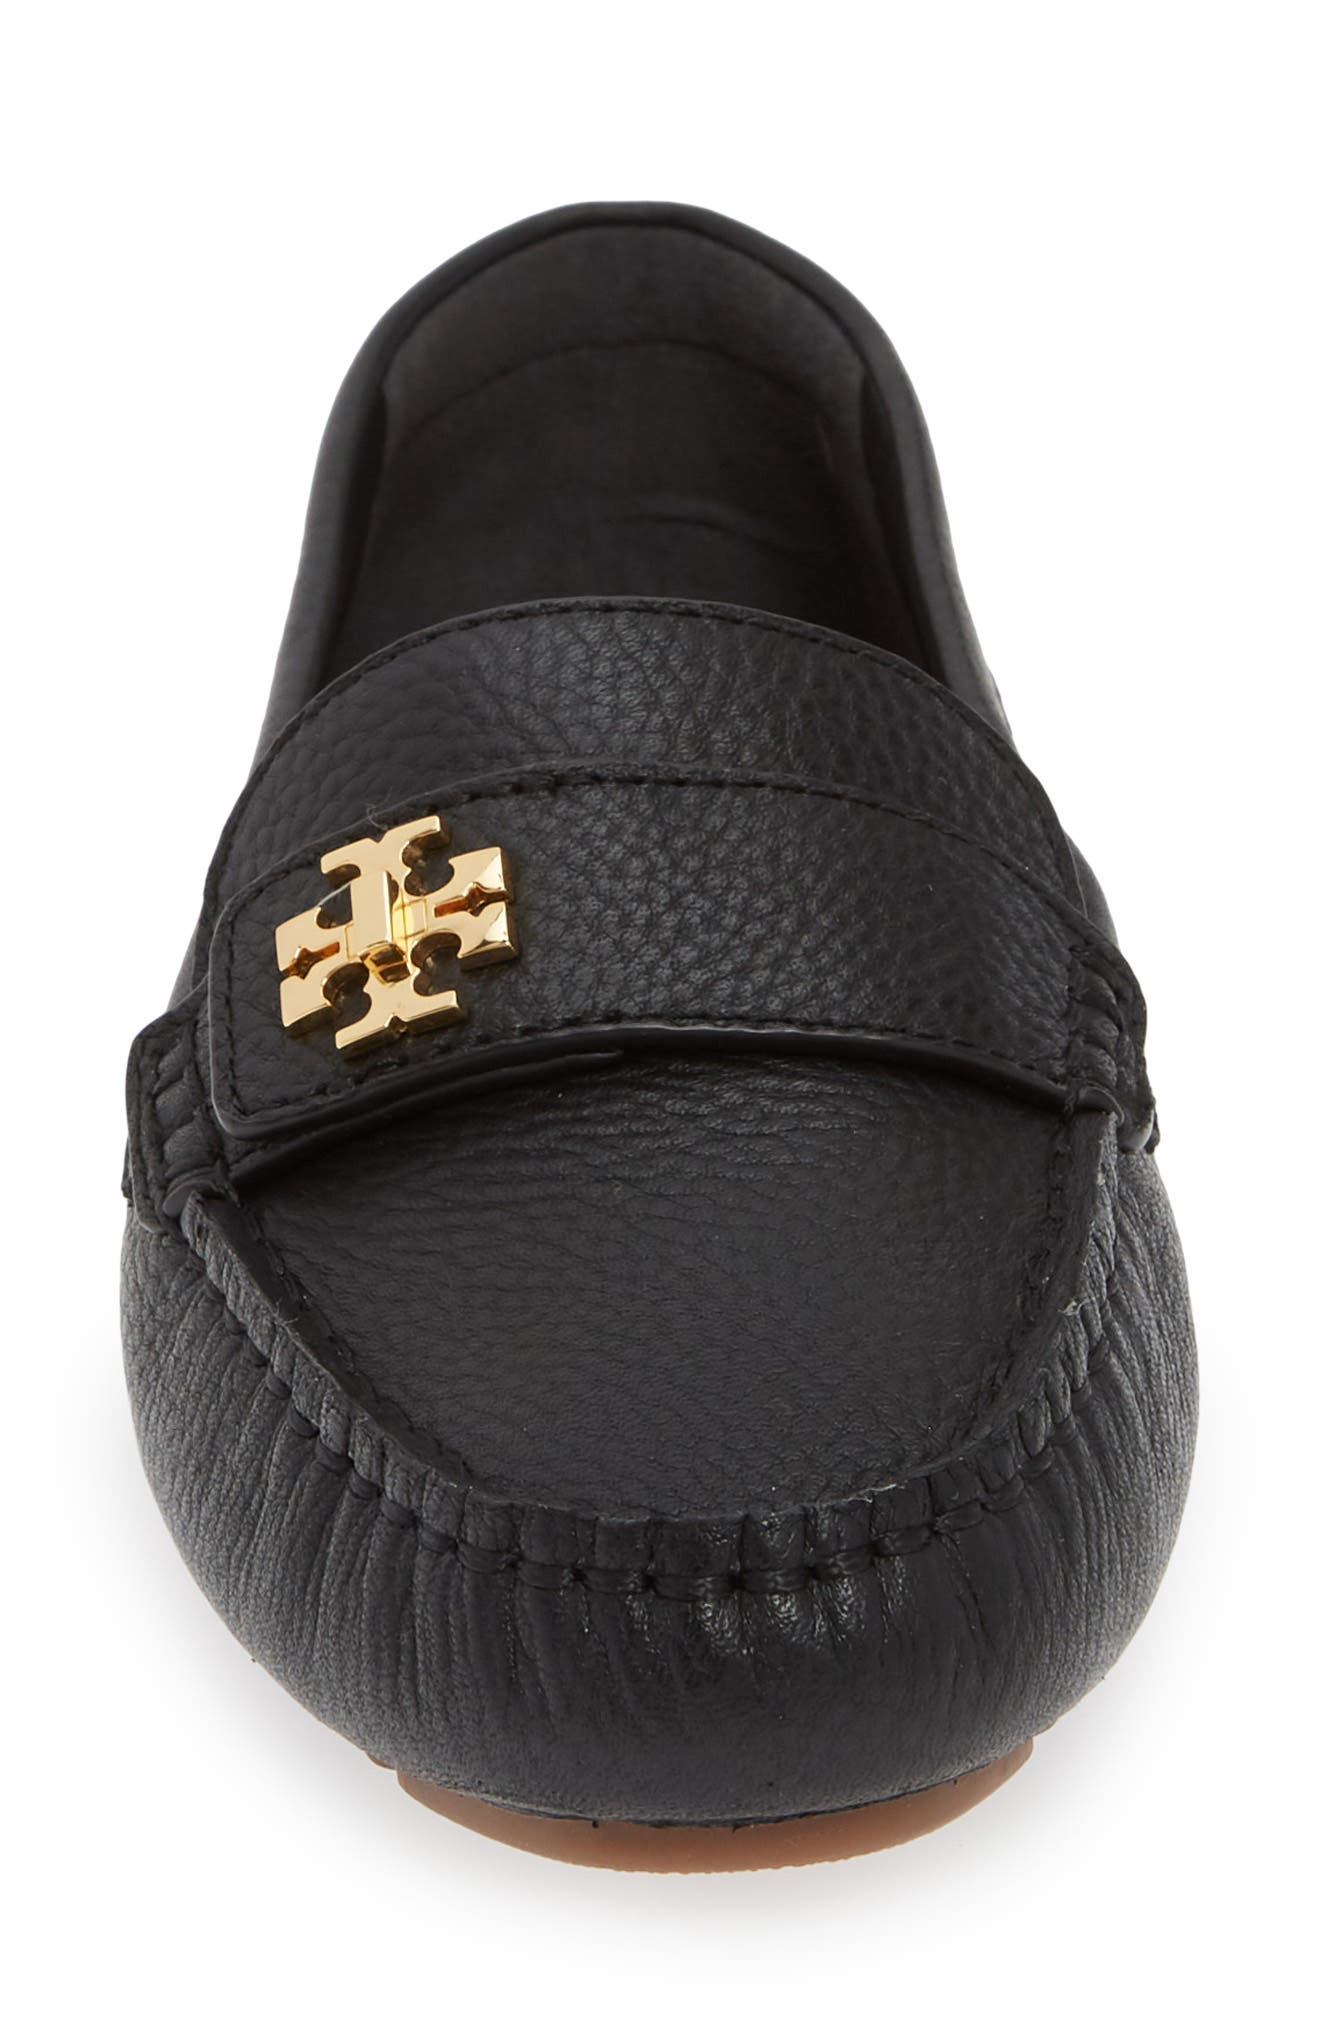 TORY BURCH, Kira Driving Loafer, Alternate thumbnail 4, color, PERFECT BLACK